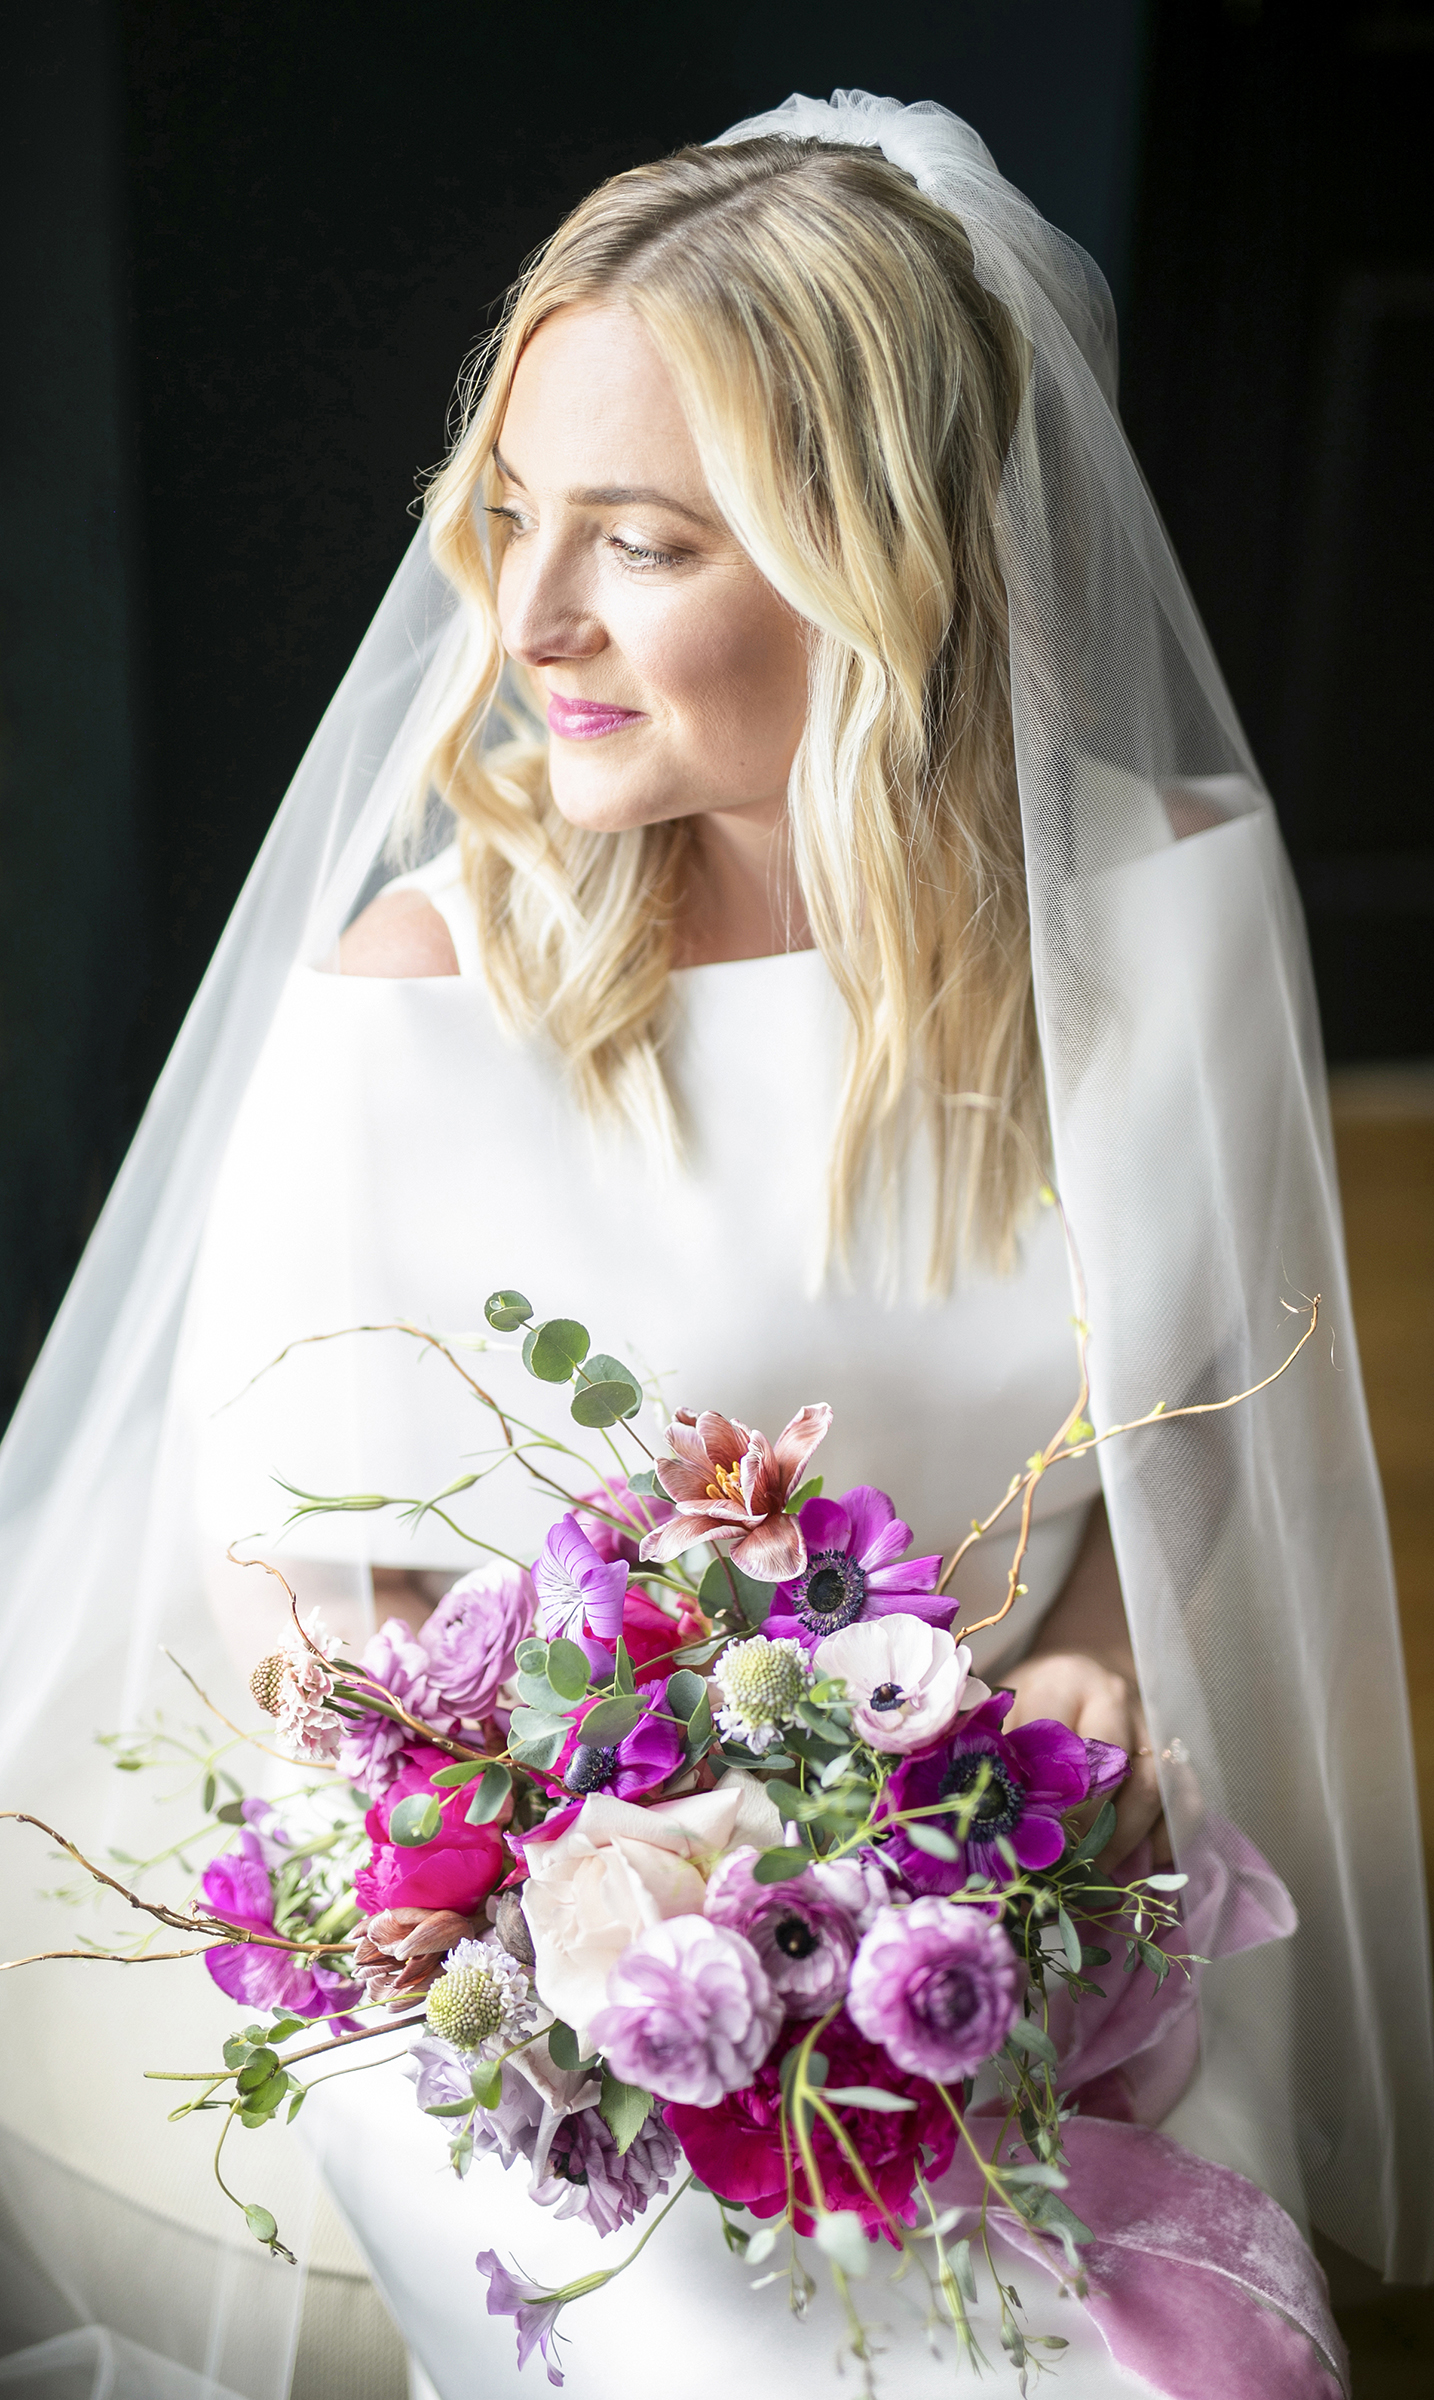 seated-bride-portrait-with-veil-and-bouquet-anna-schmidt-photography